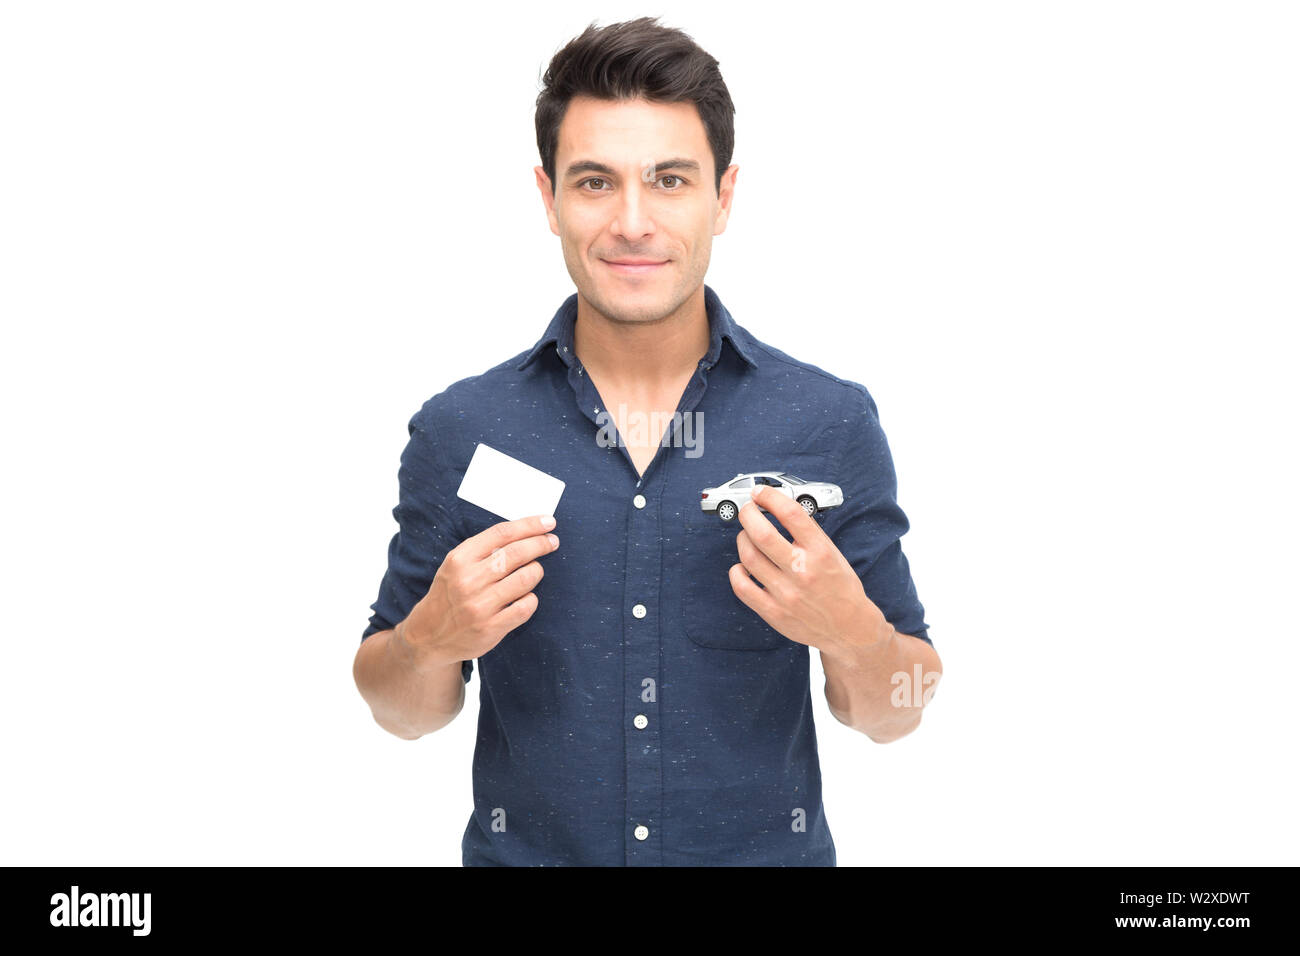 Young Caucasian man holding car insurance card isolated on white background - Stock Image